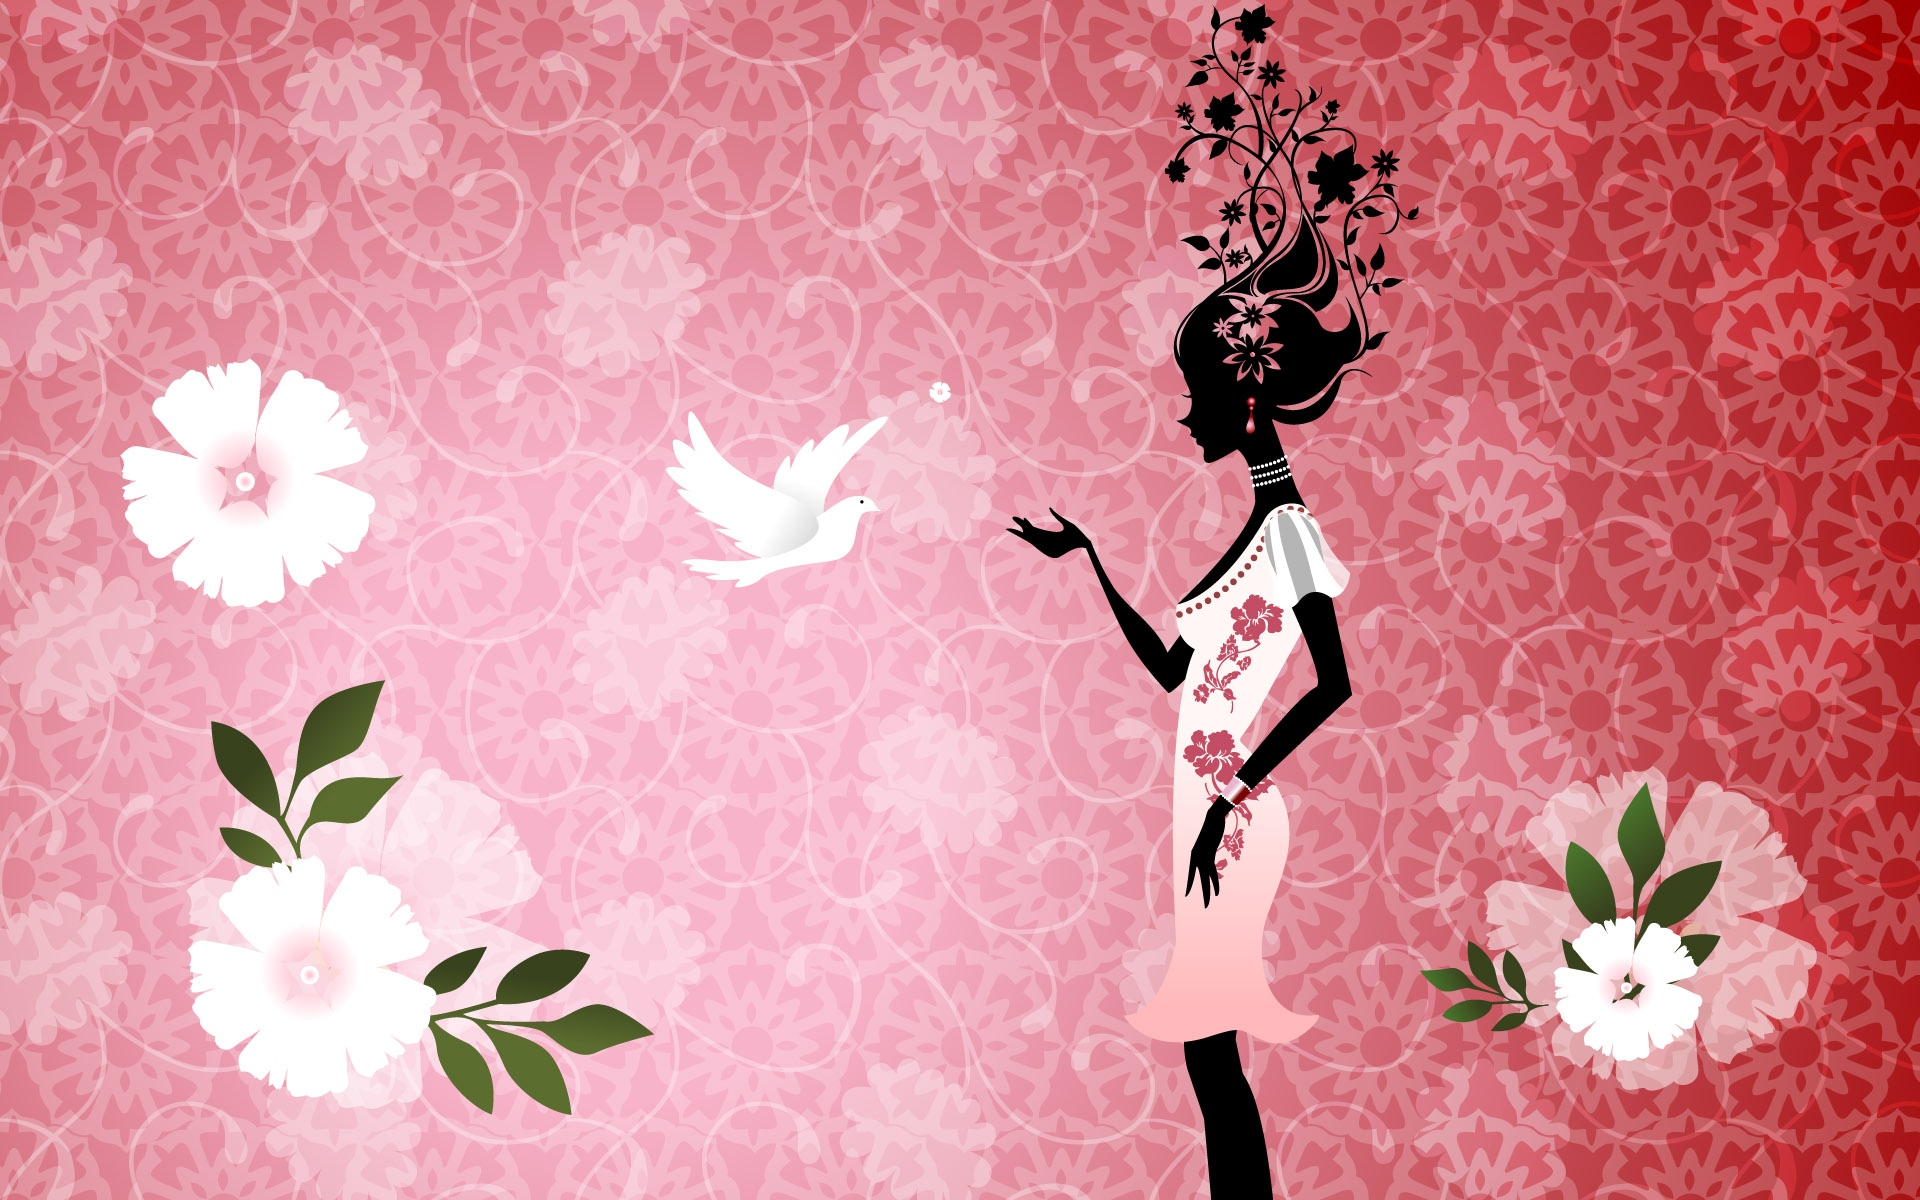 Girly Backgrounds for Desktop HD wallpaper background 1920x1200